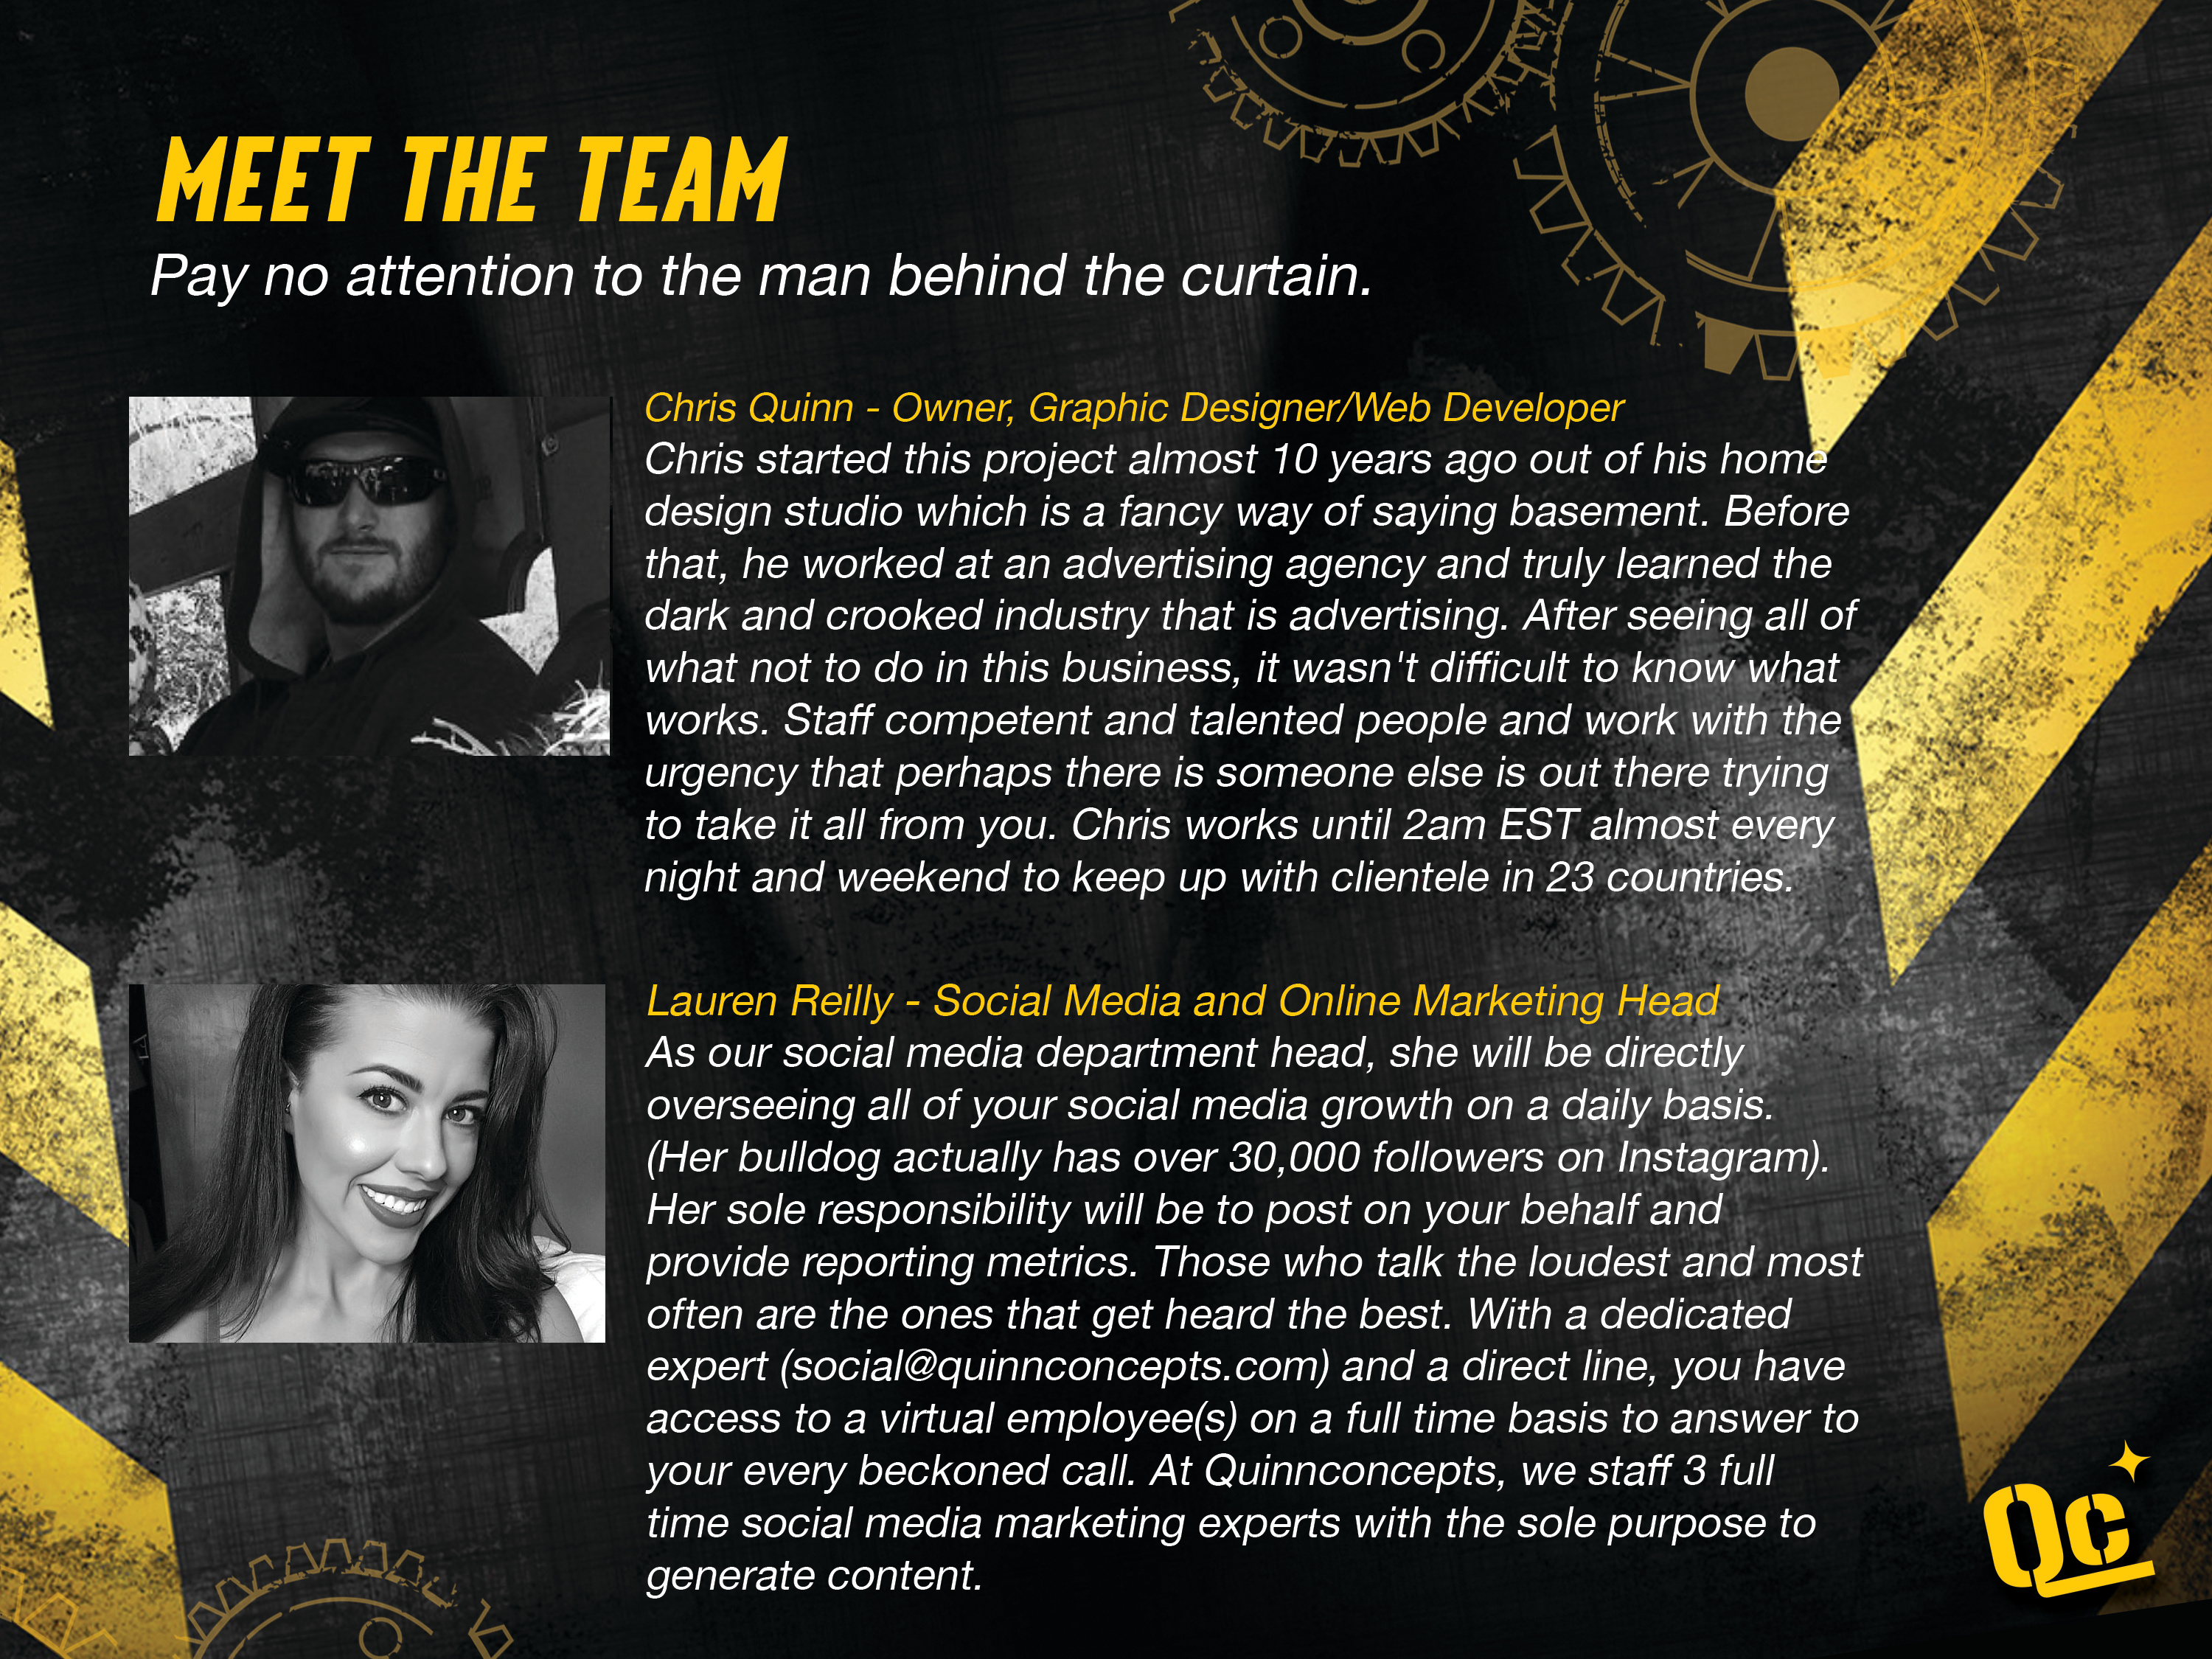 slide 6 - Meet the Team